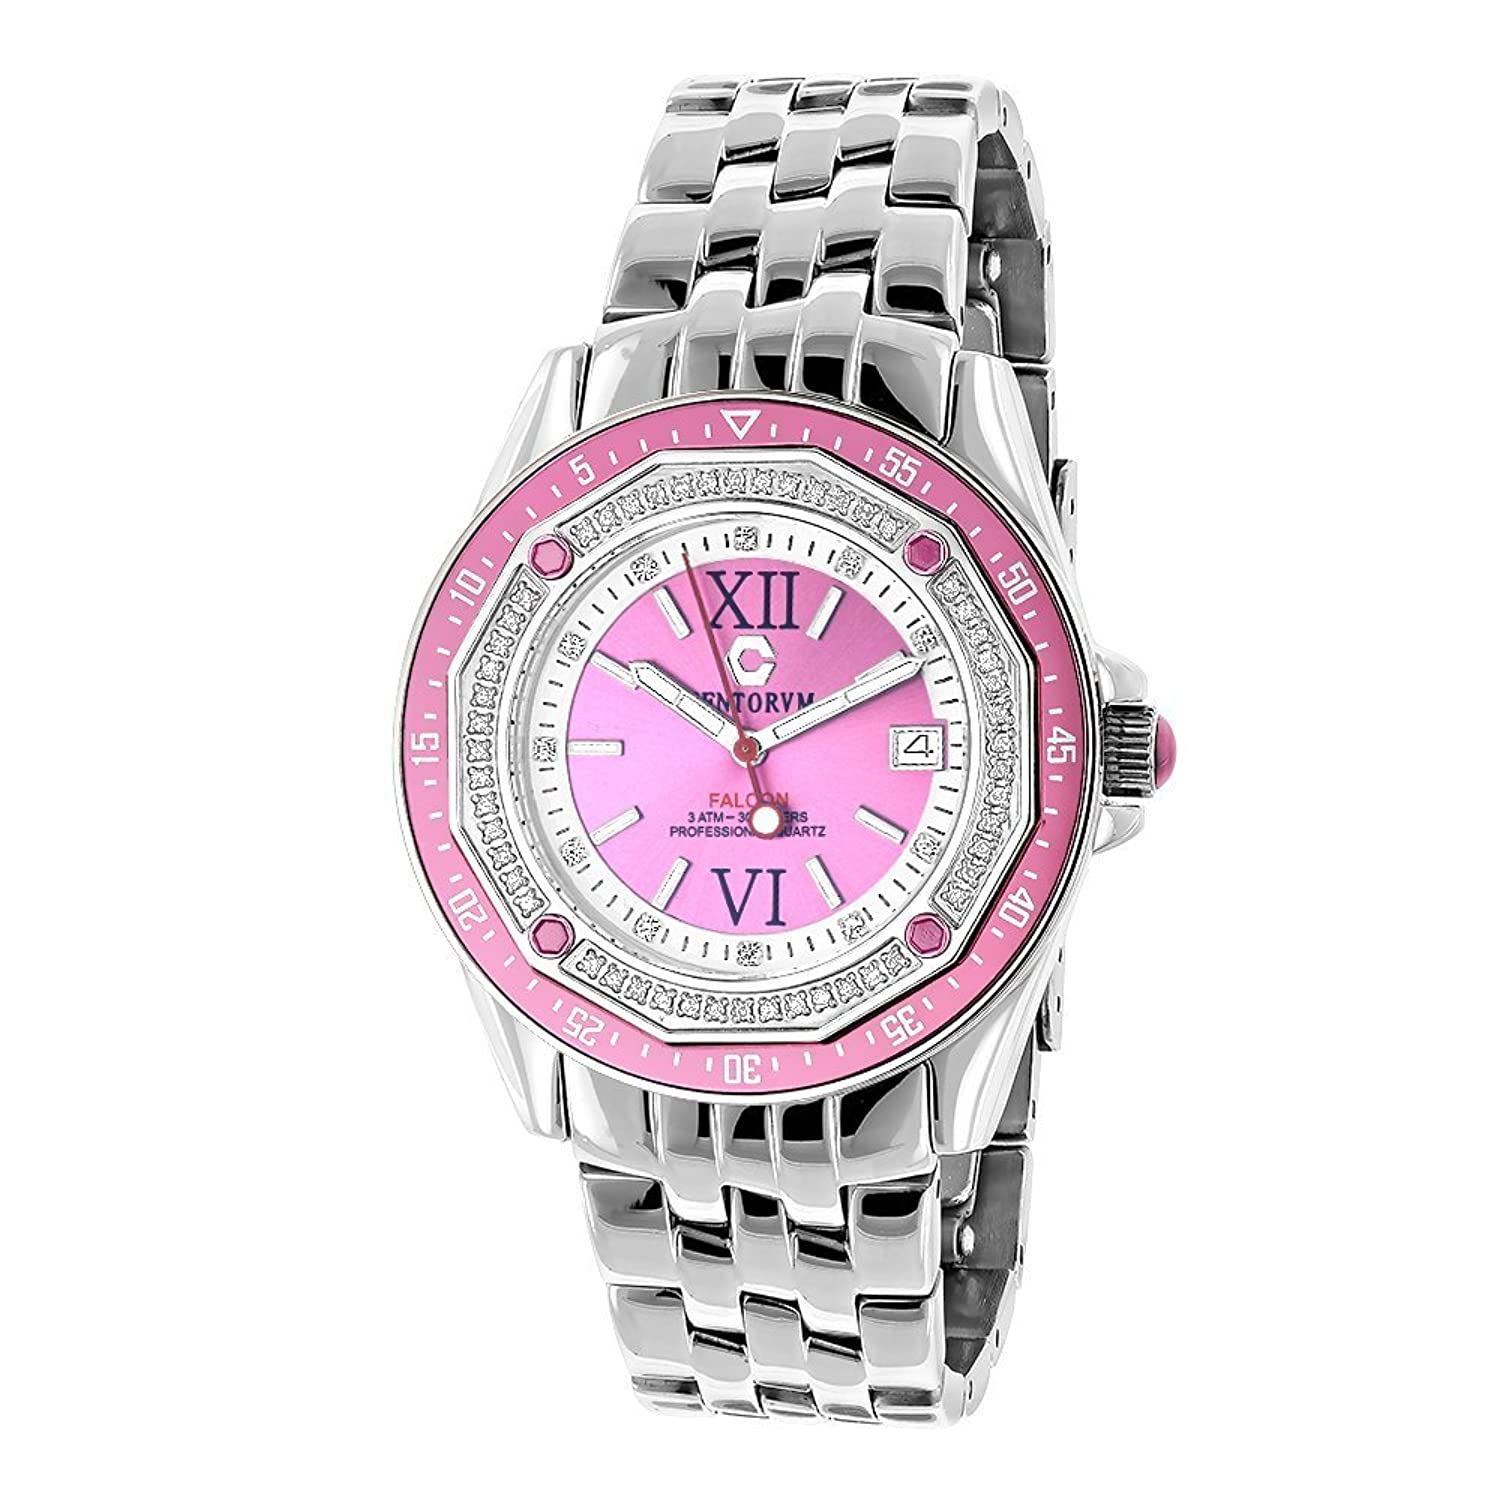 Ladies Diamond Watch: Centorum Falcon 0.50ct